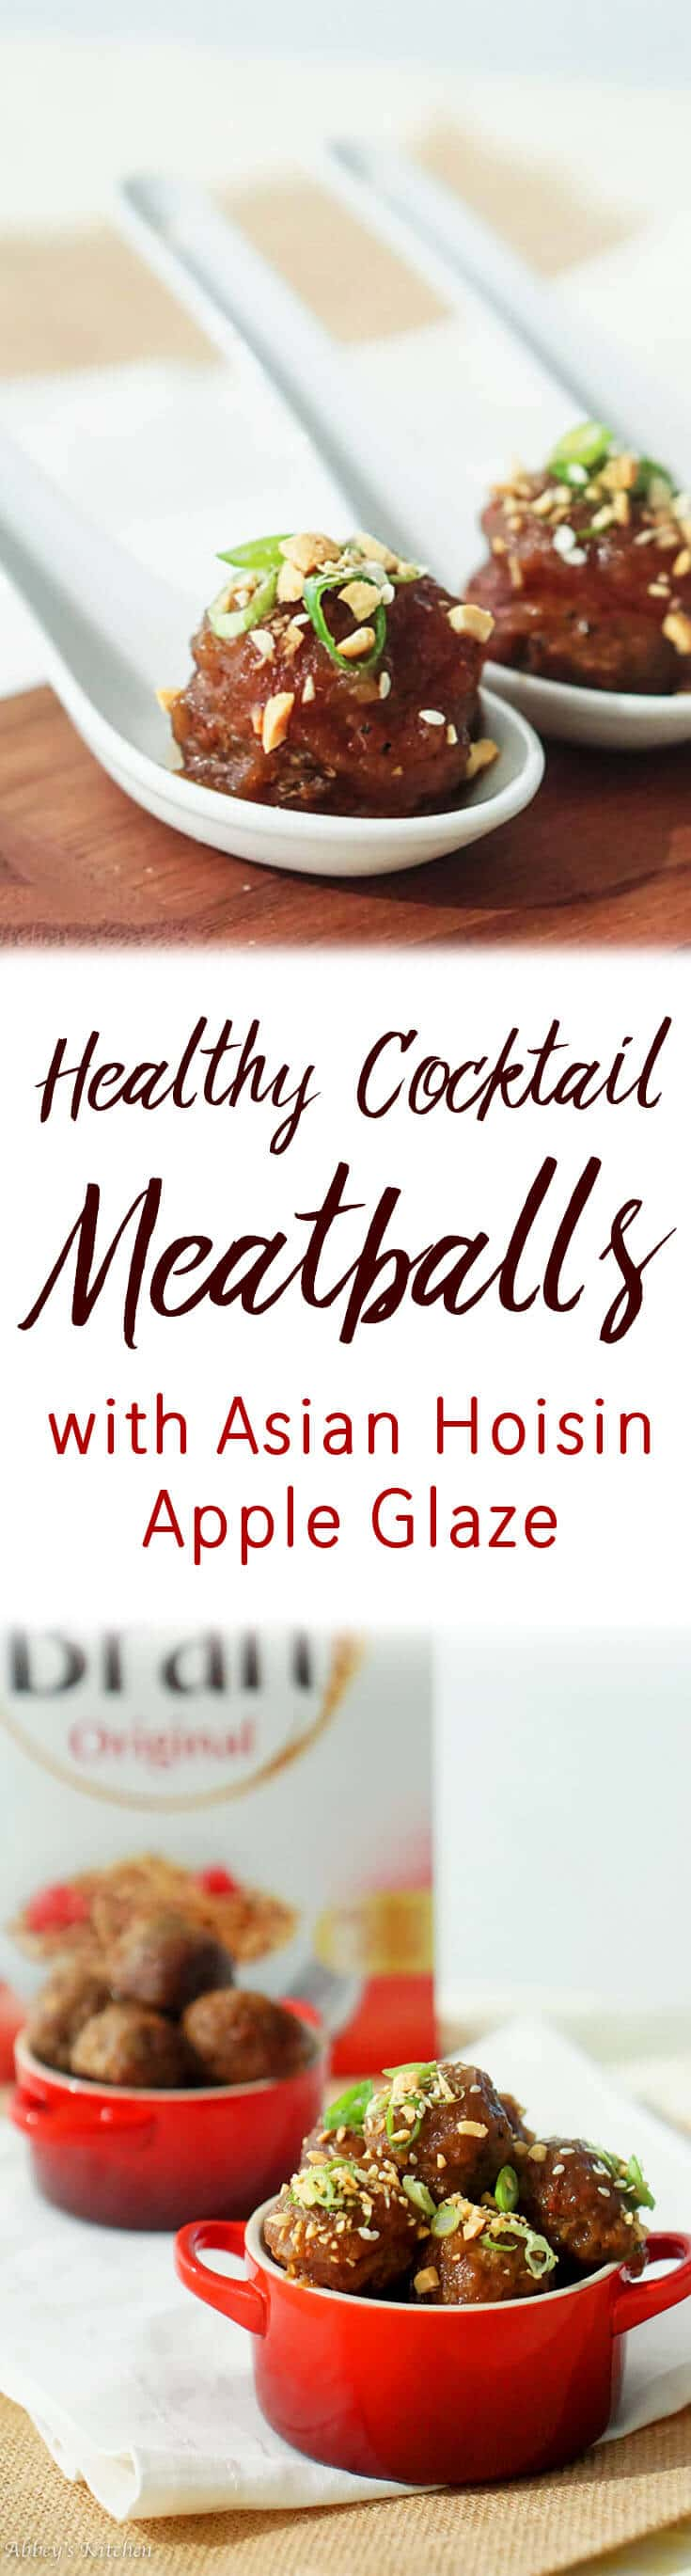 These healthy cocktail meatballs with asian hoisin apple glaze as a lean, high protein, high fibre way to entertain this holiday!